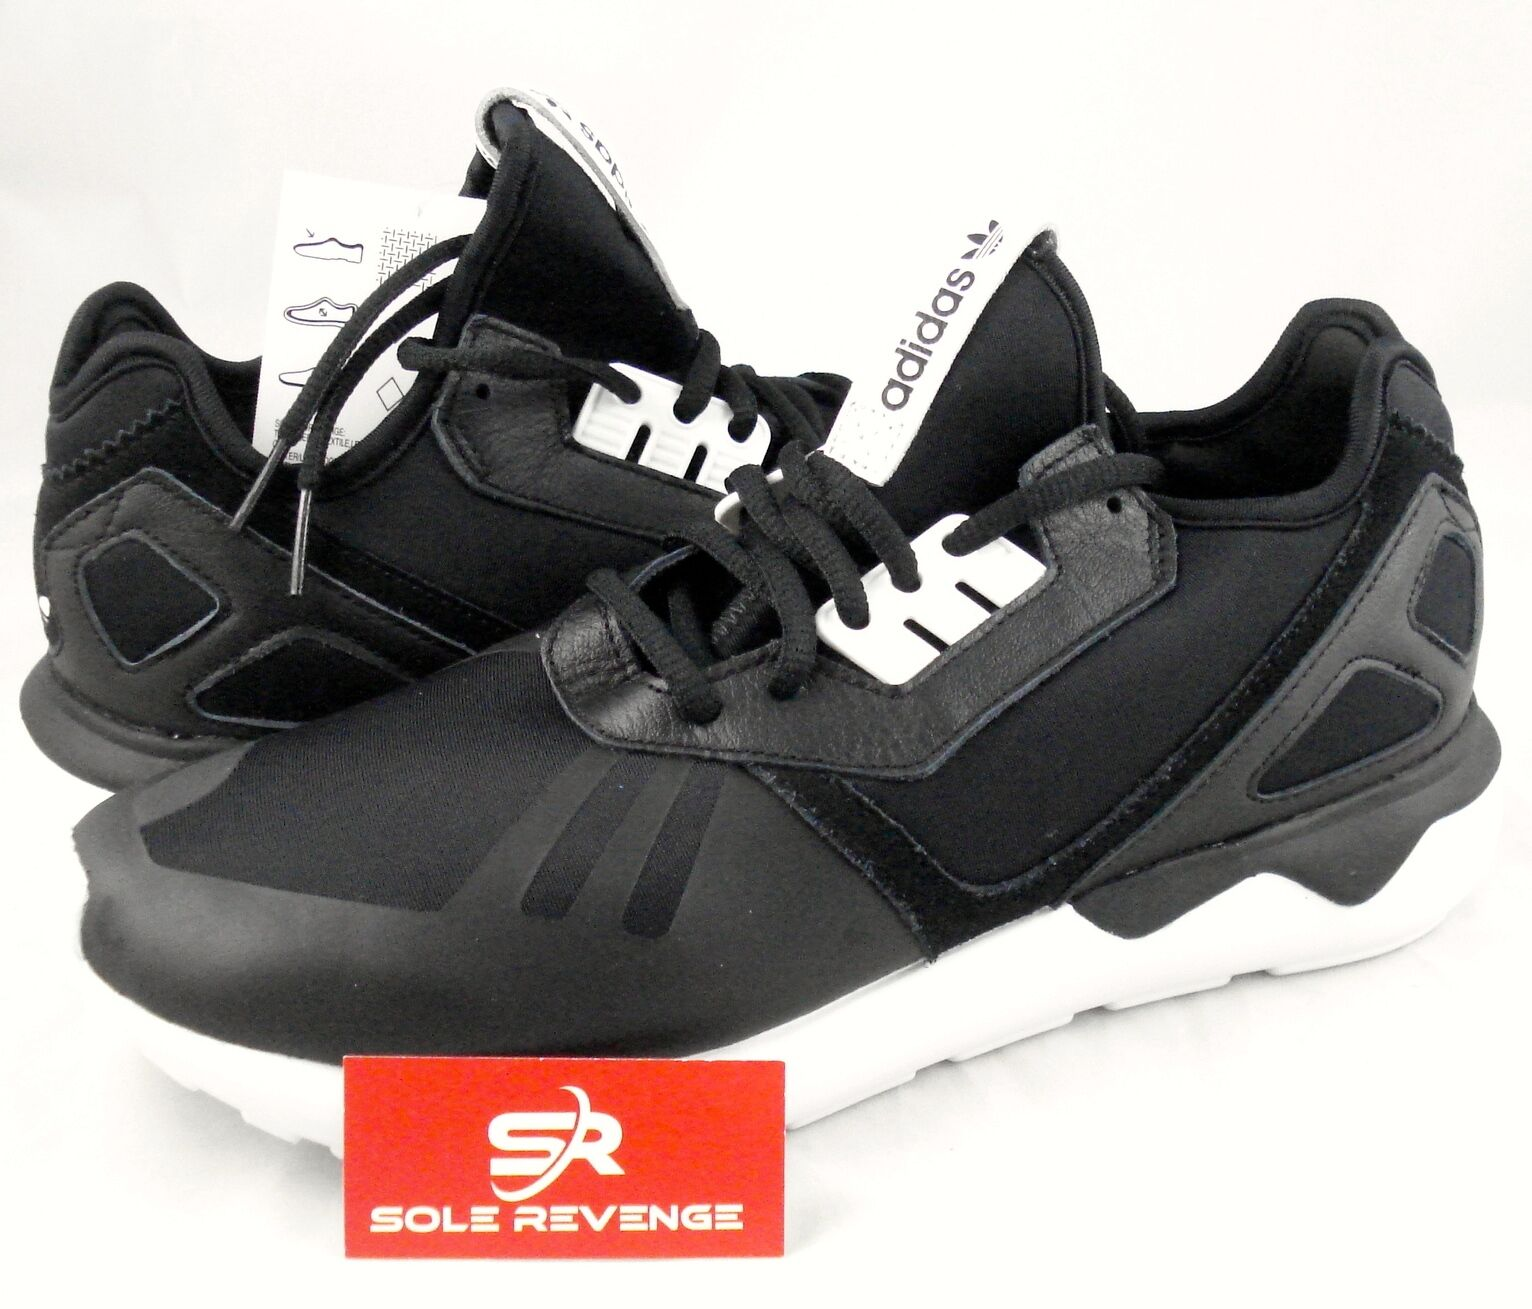 New adidas Originals Homme TUBULAR Runner Chaussures Noir Blanc B41272 flux loop c10